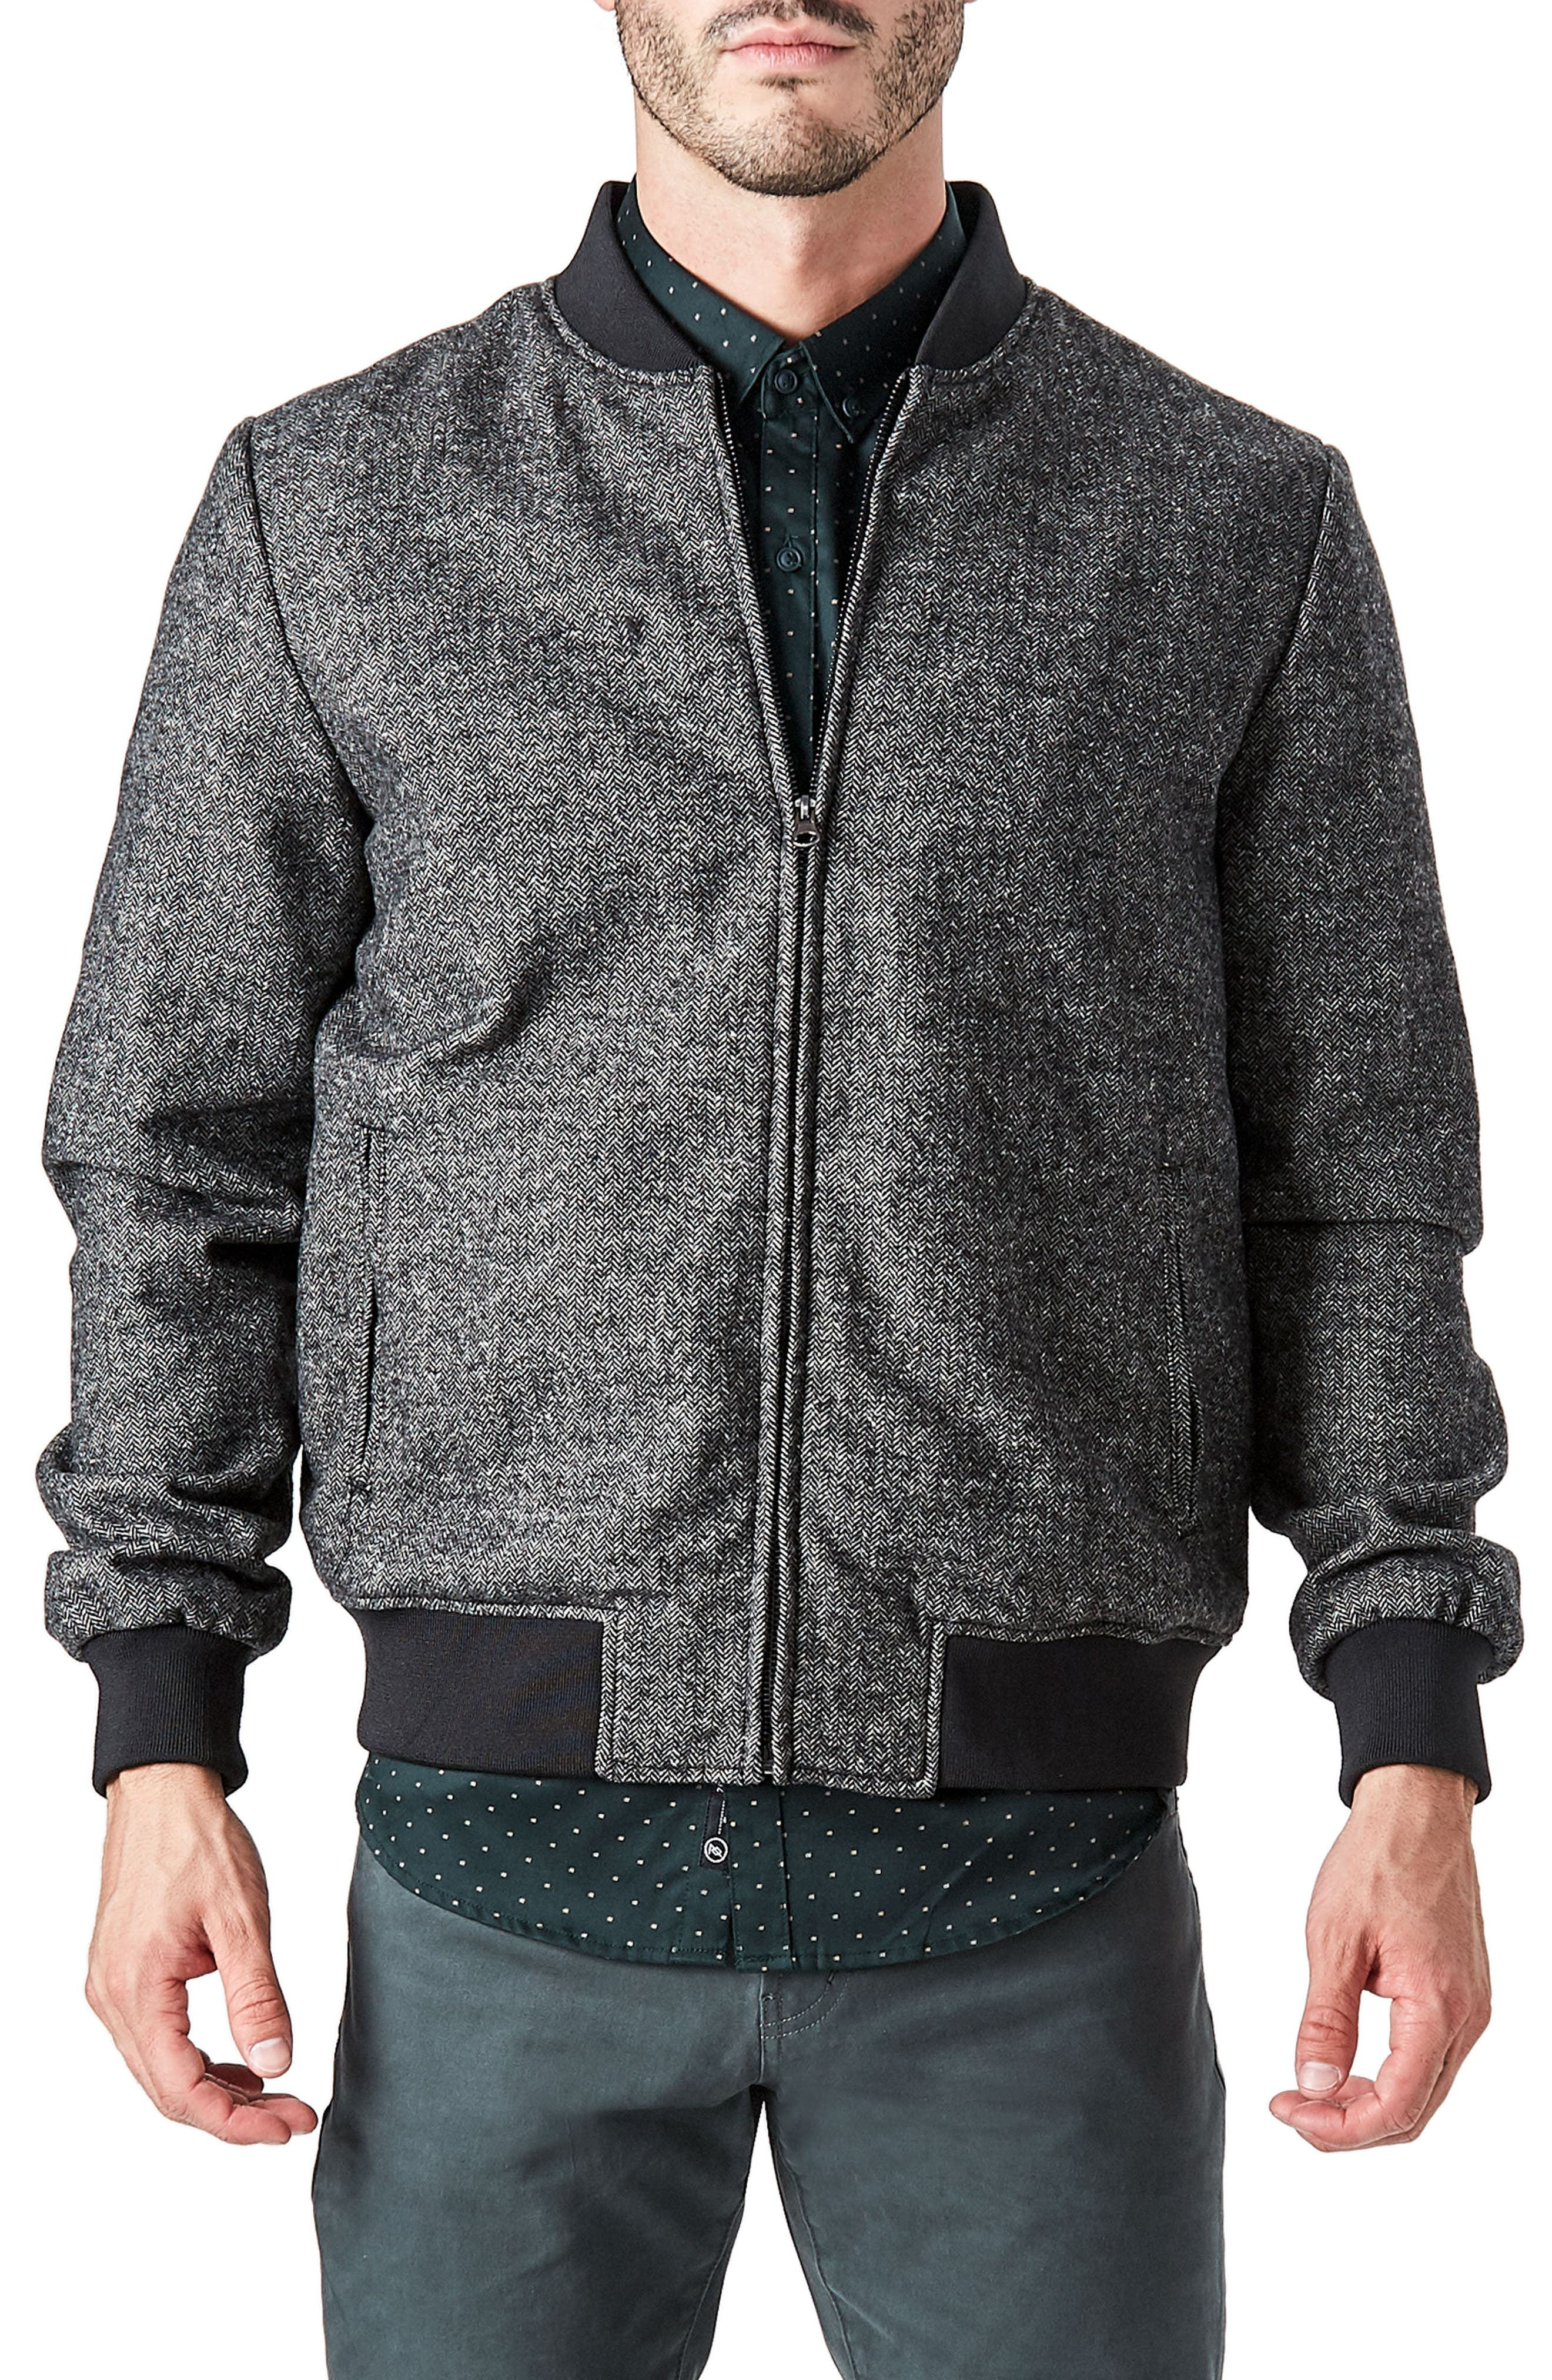 Aether Bomber Jacket,                         Main,                         color,